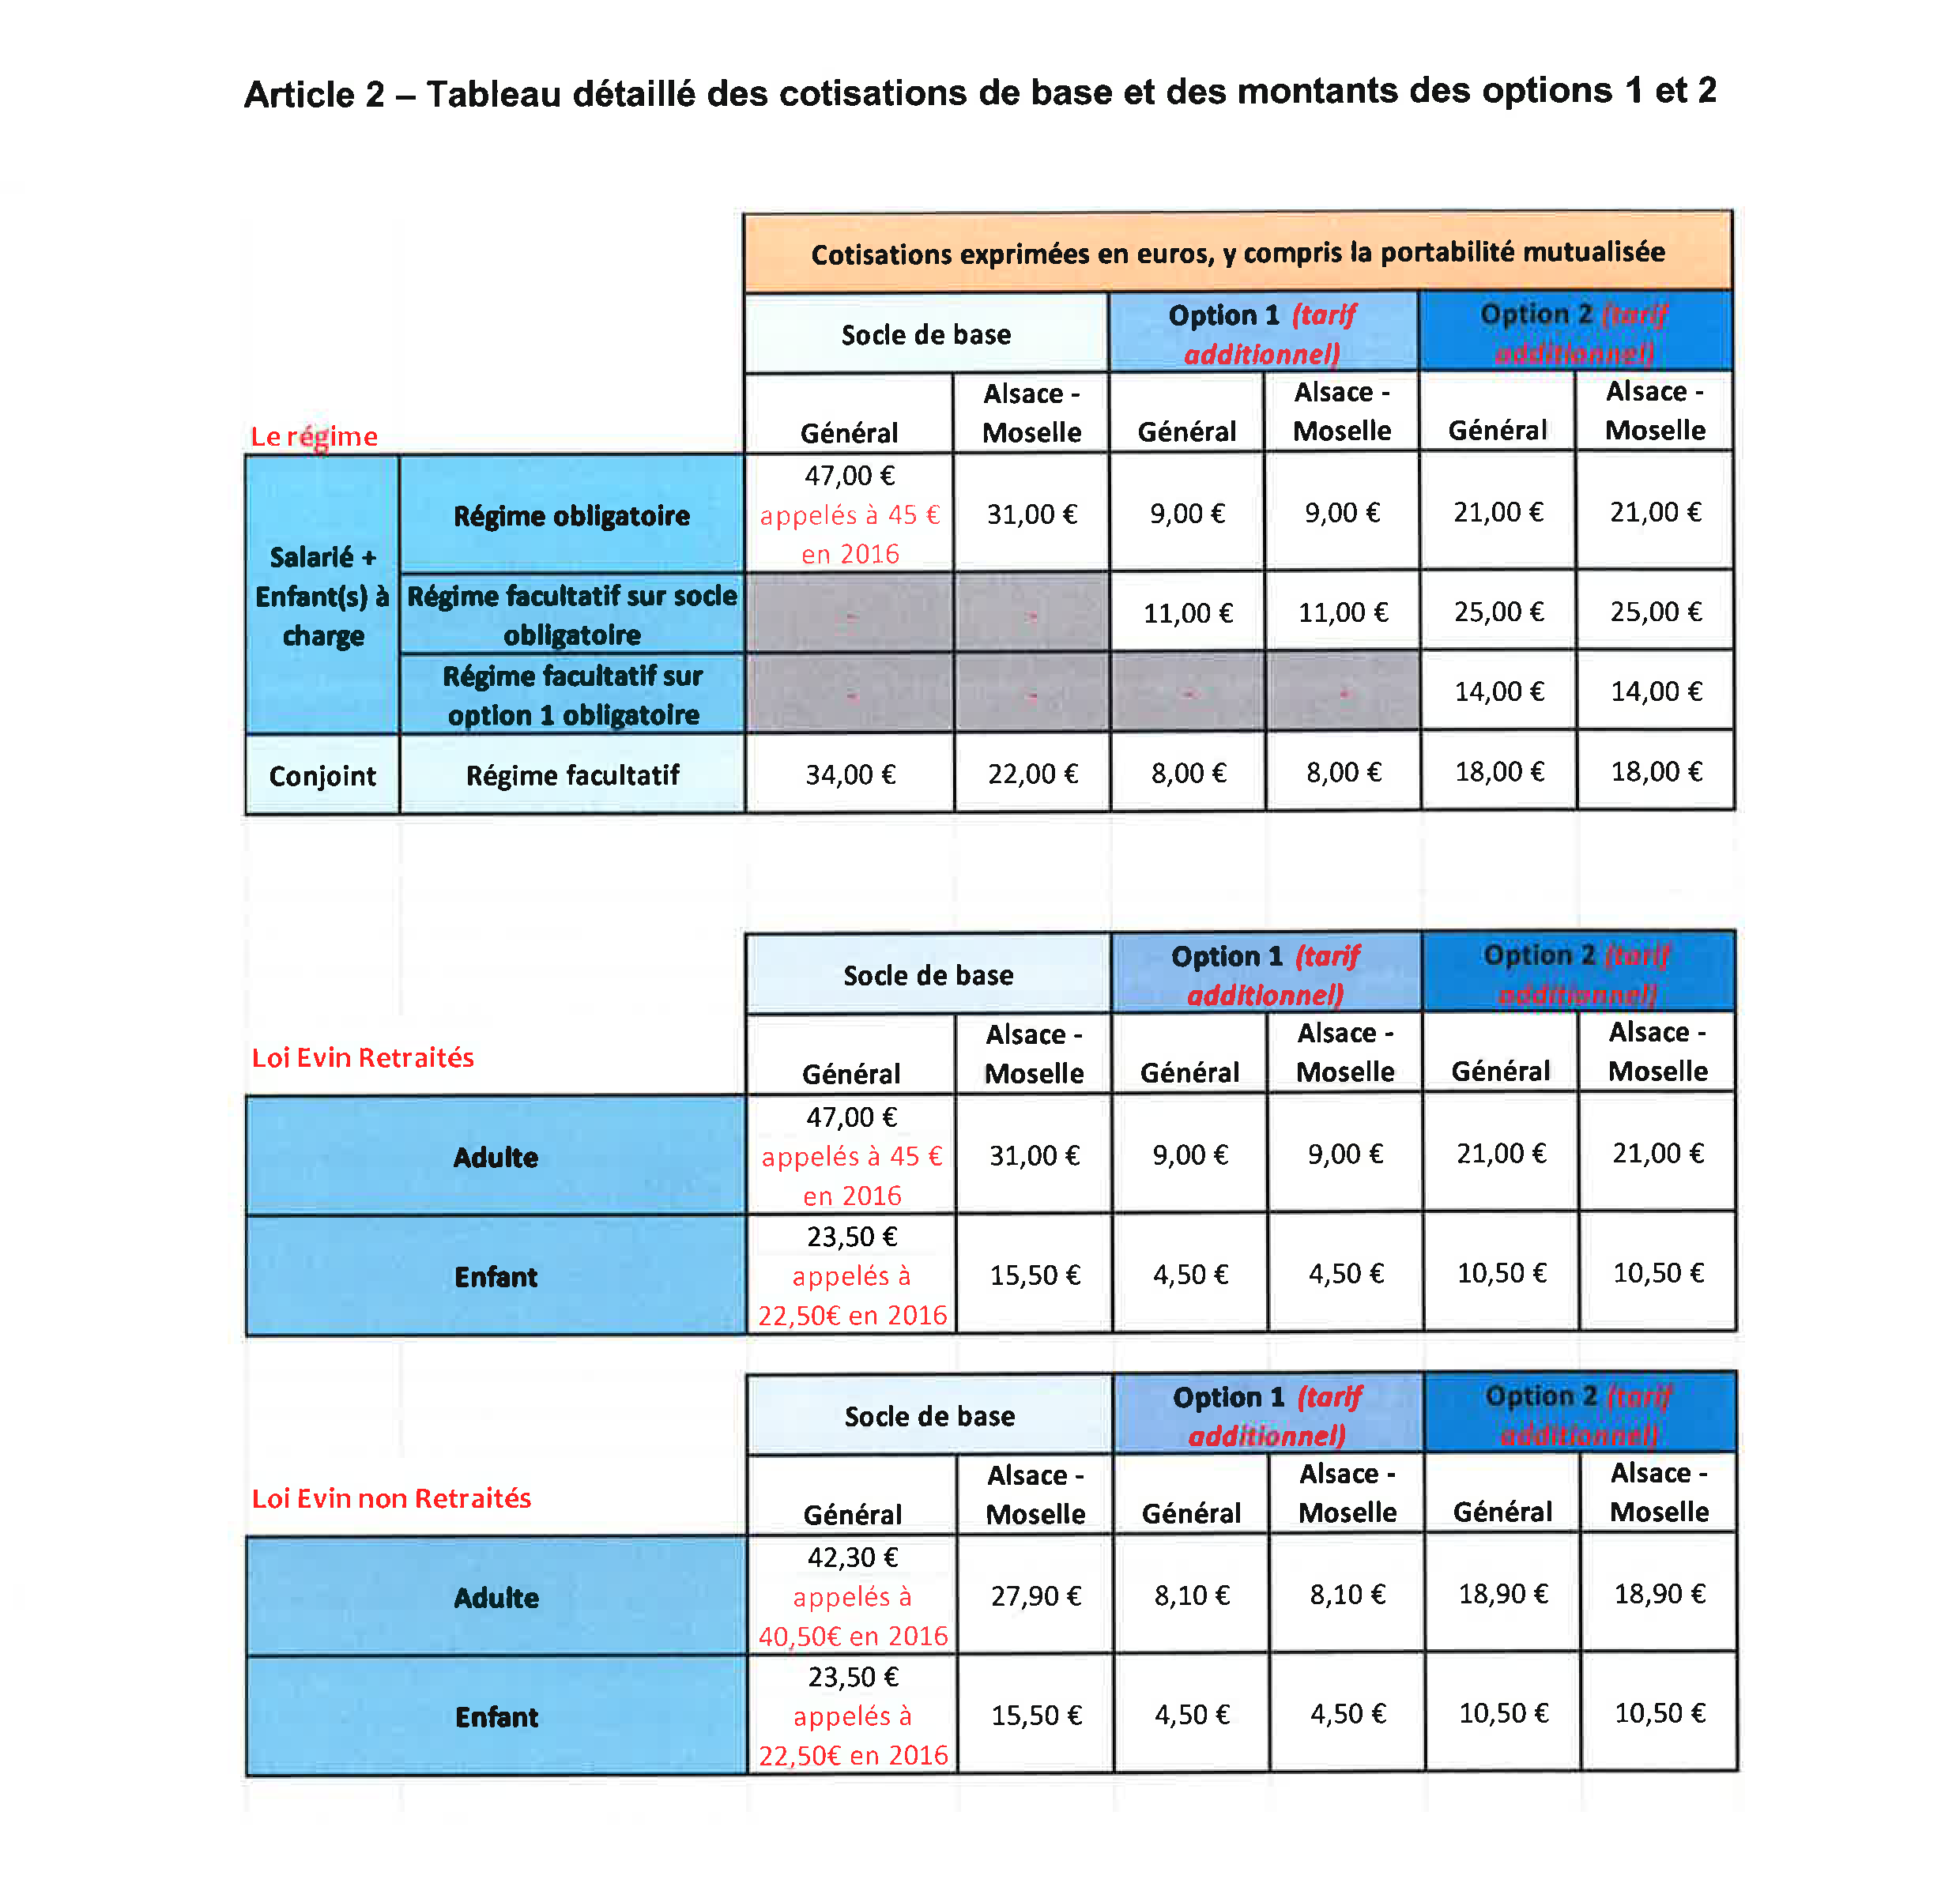 Accord Sante National Du 7 Octobre 2015 Fieci Cfe Cgc